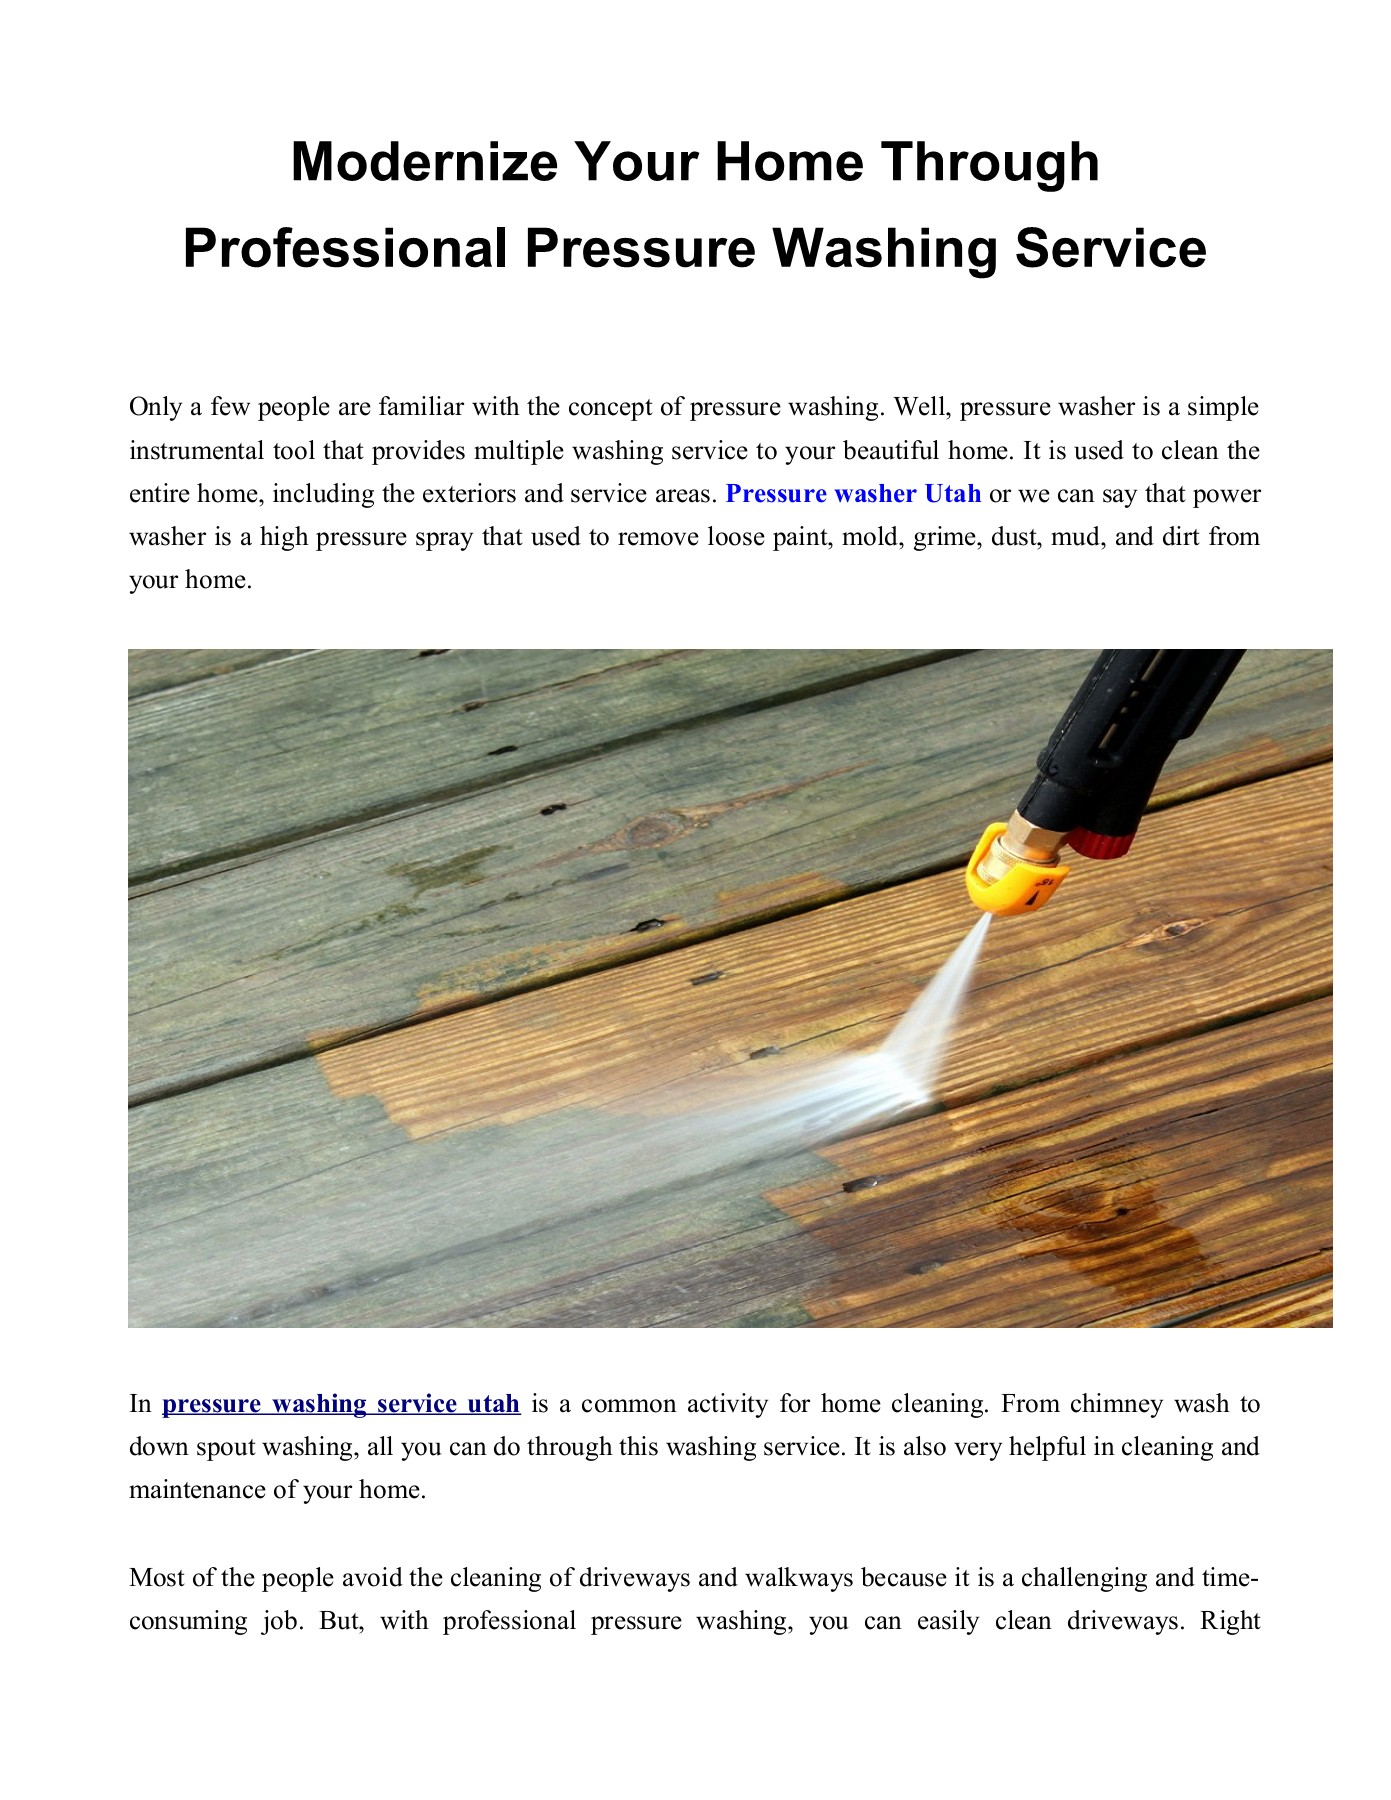 pressure washing service utah Pages 1 - 2 - Text Version